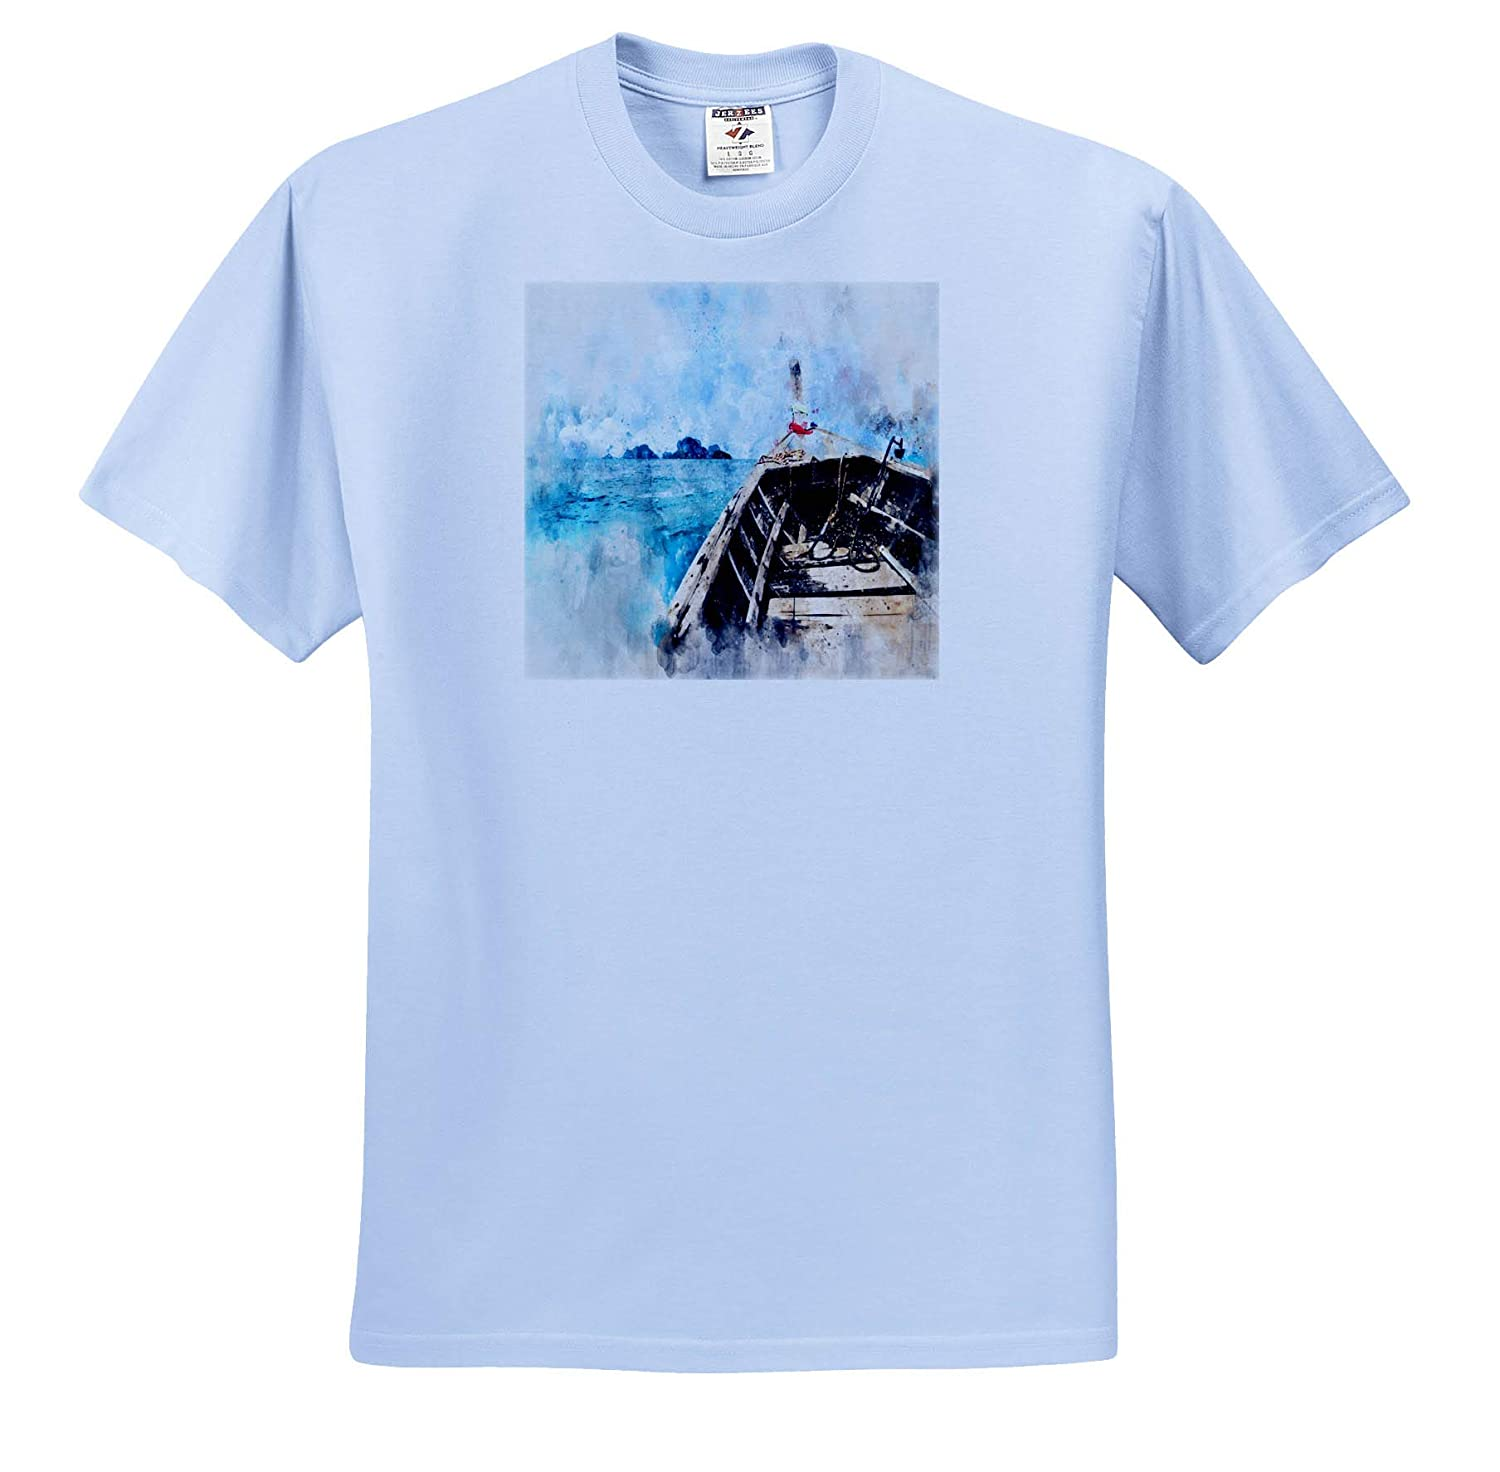 Image of Painting of Working Boat Headed to Island 3dRose Lens Art by Florene Watercolor Art T-Shirts